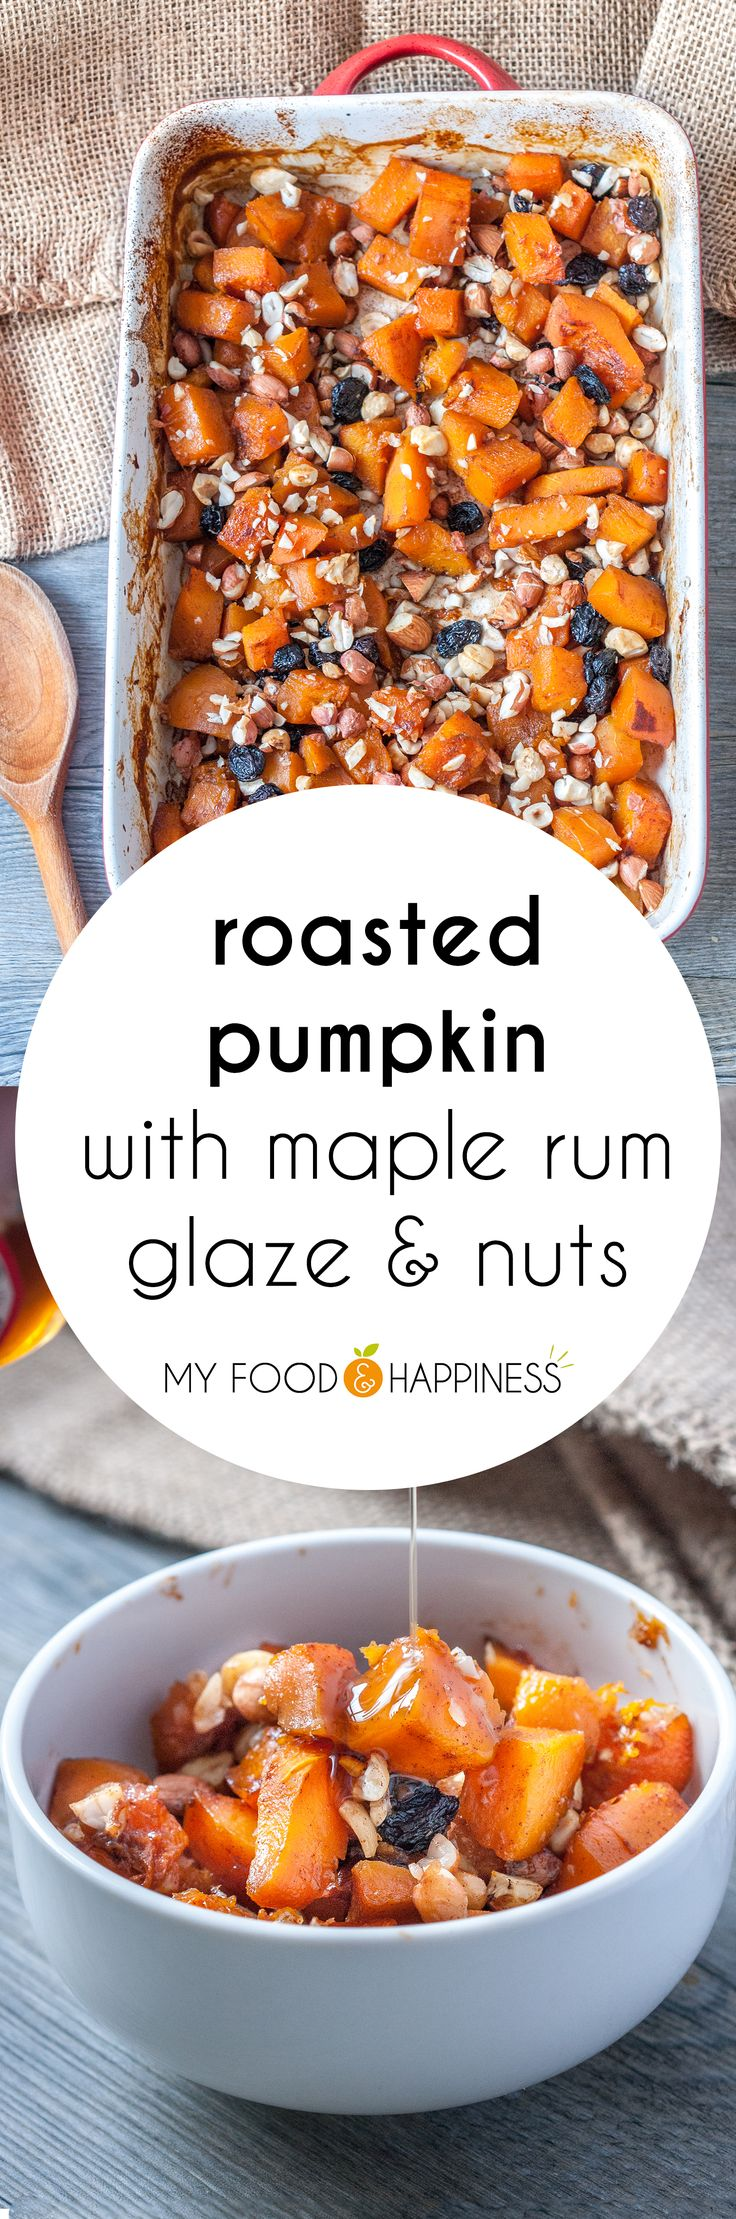 47869 best Clean Eating Recipes♥ images on Pinterest ...